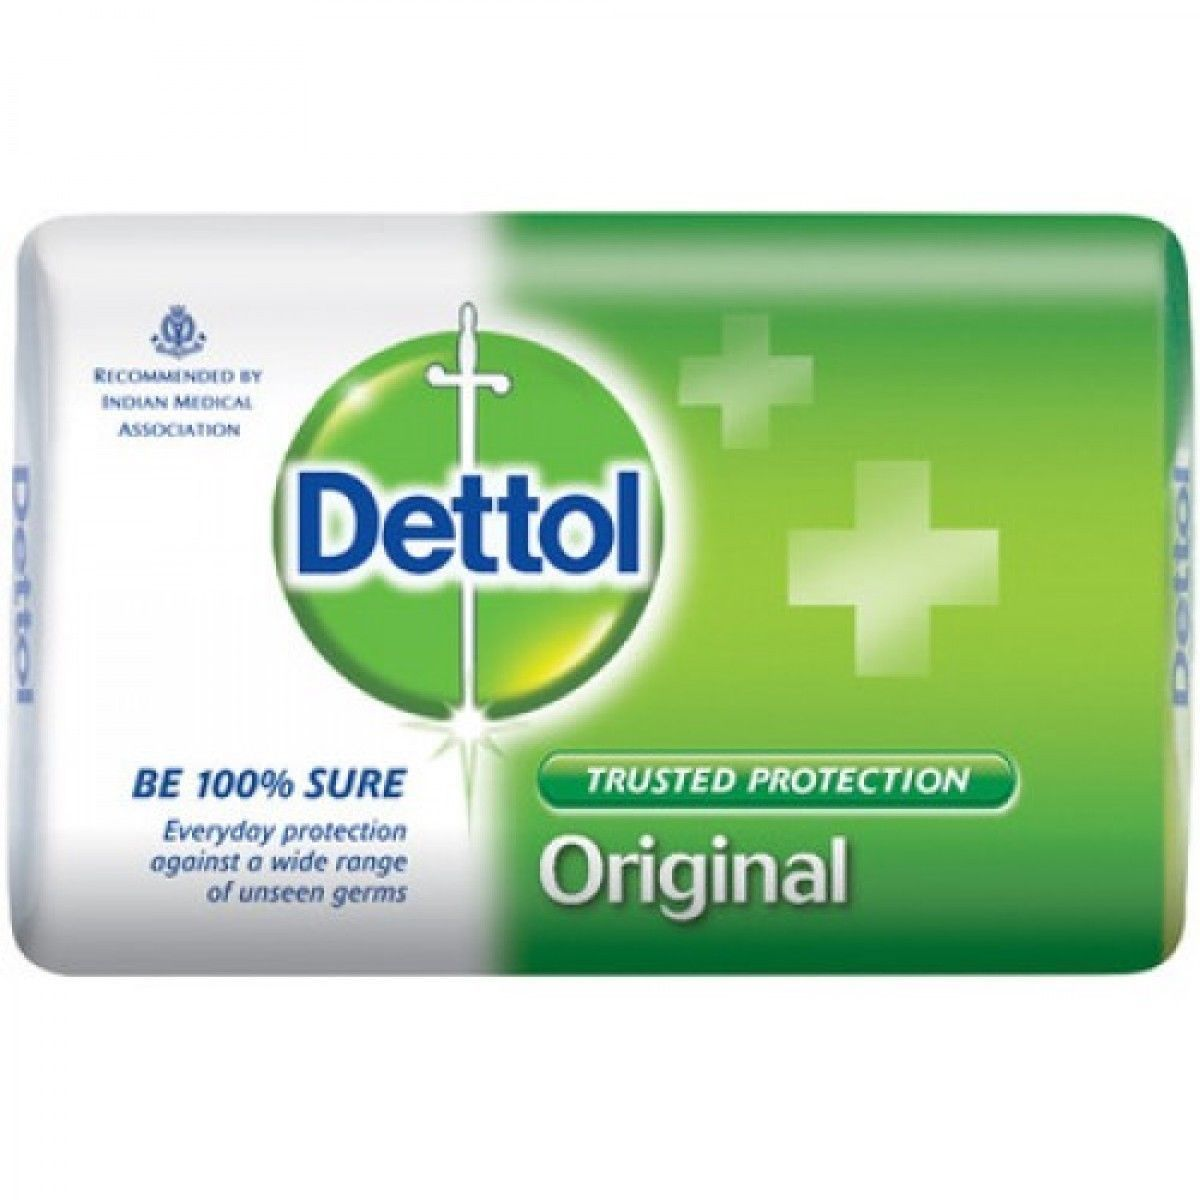 Dettol Orignal Soap Trusted Protection for Family Original 75gm ( pack of 3 )** image 4